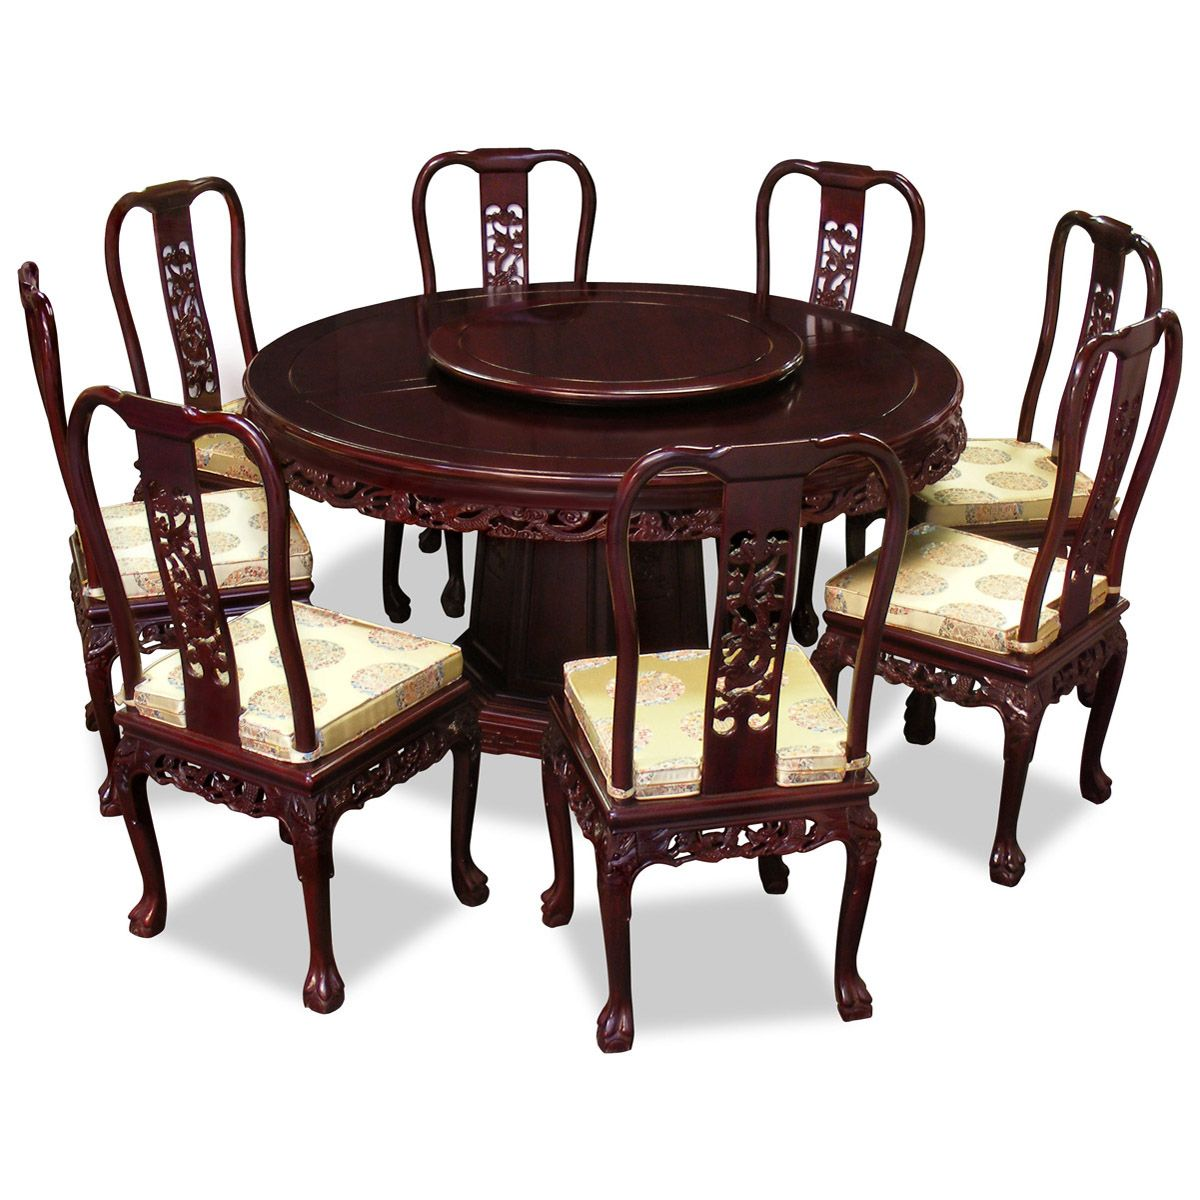 Round Table 8 Chairs Hitchcock Desk And Chair 60in Rosewood Imperial Dragon Design Dining With